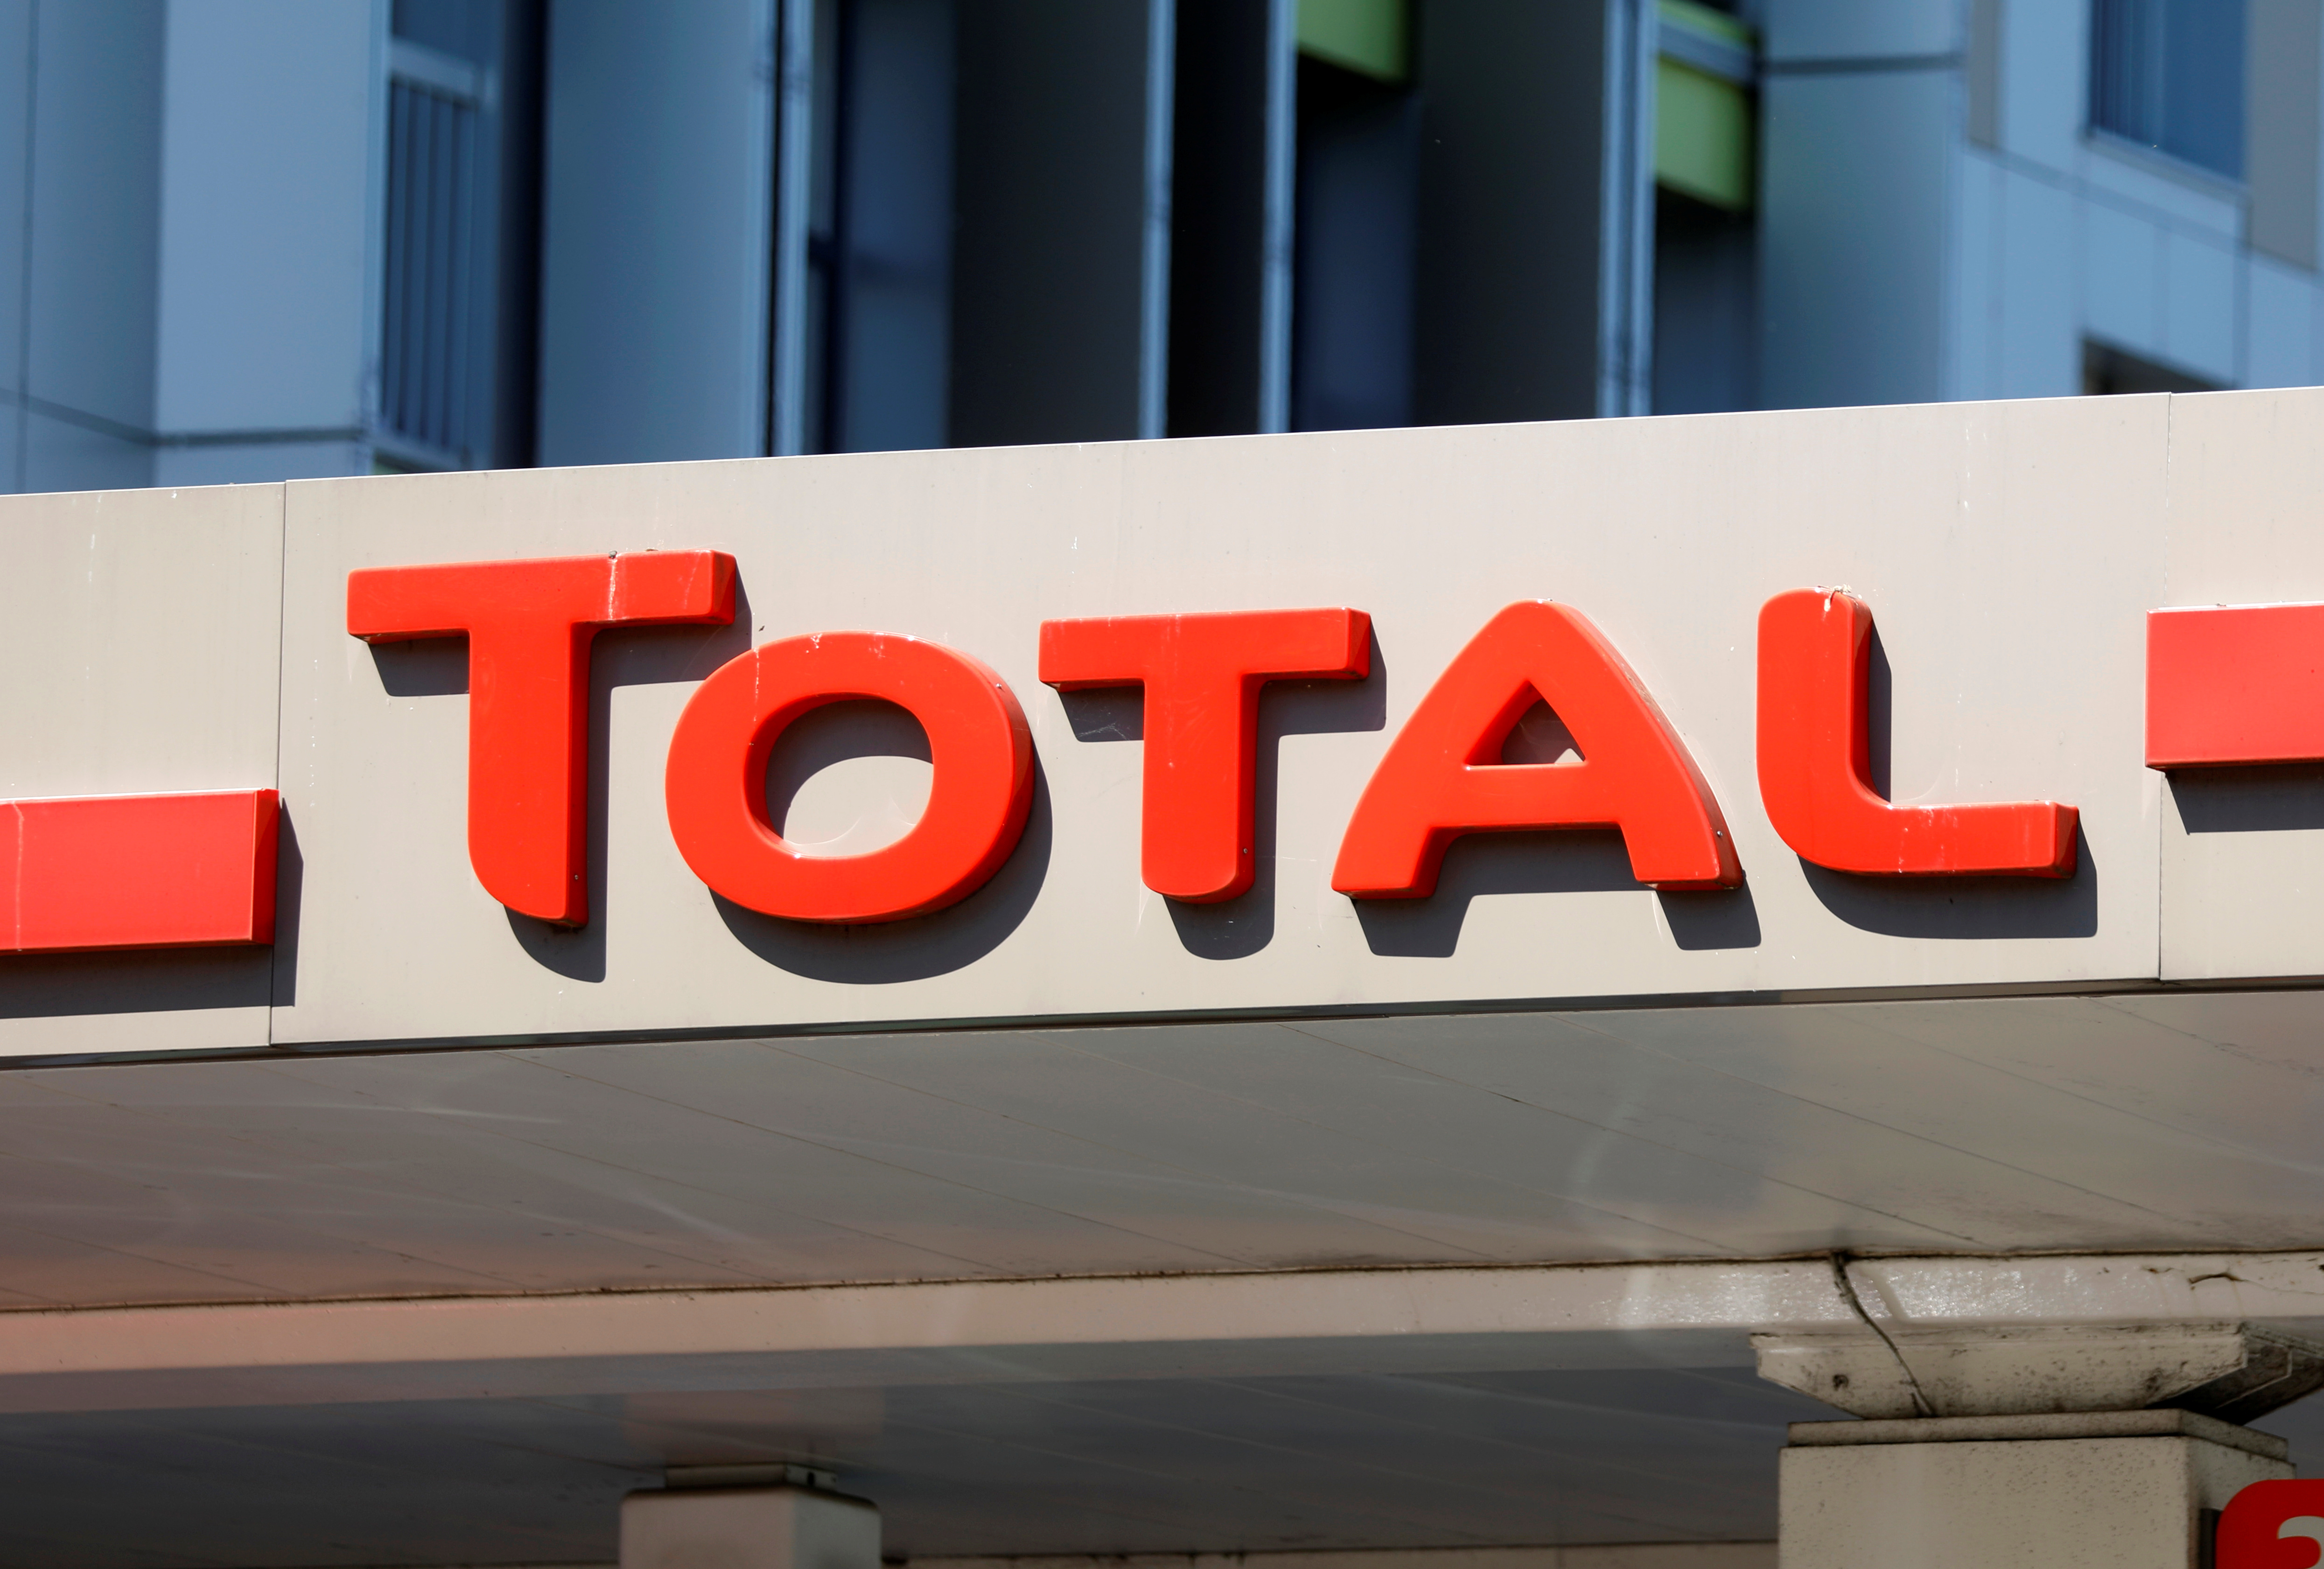 The logo of French energy group Total is seen on a gas station in Montreuil, France, May 18, 2020. REUTERS/Charles Platiau